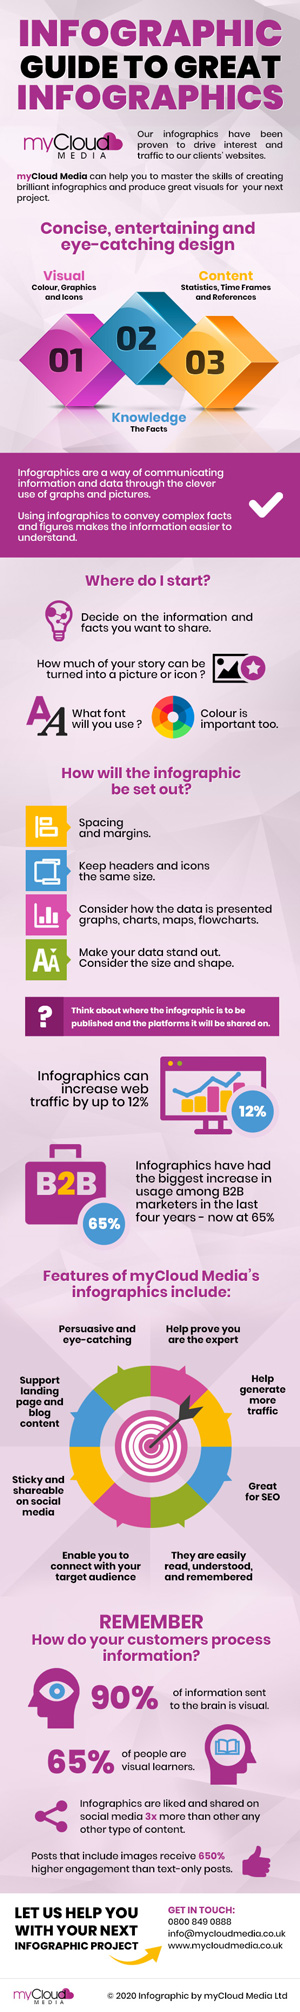 Infographic Guide to Great Infographics